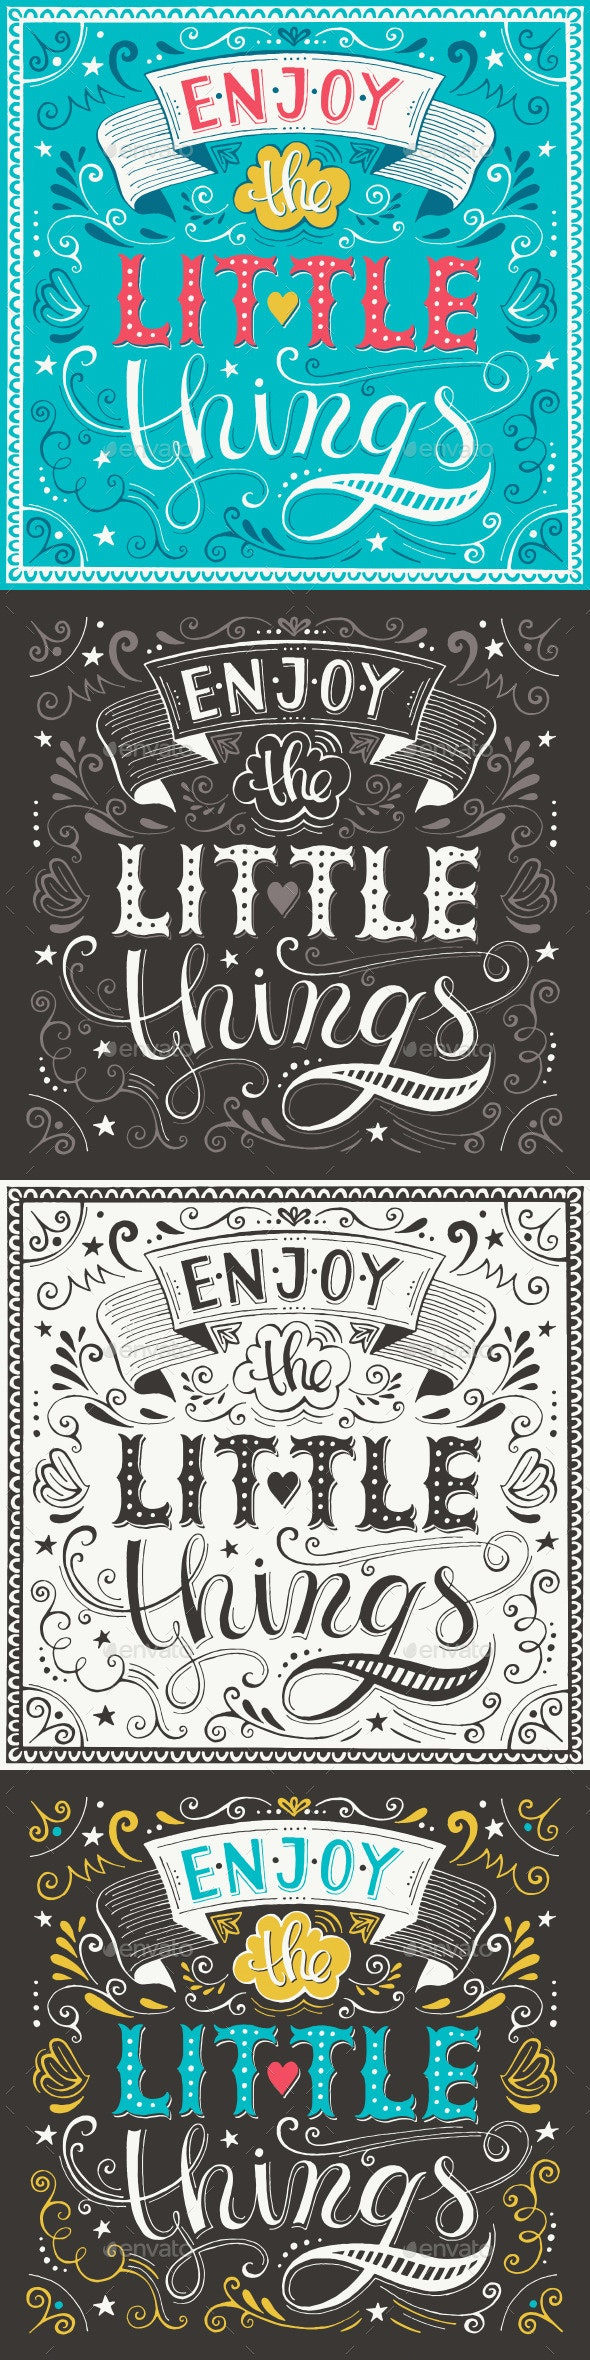 Hand Lettering Motivational Posters - Retro Technology